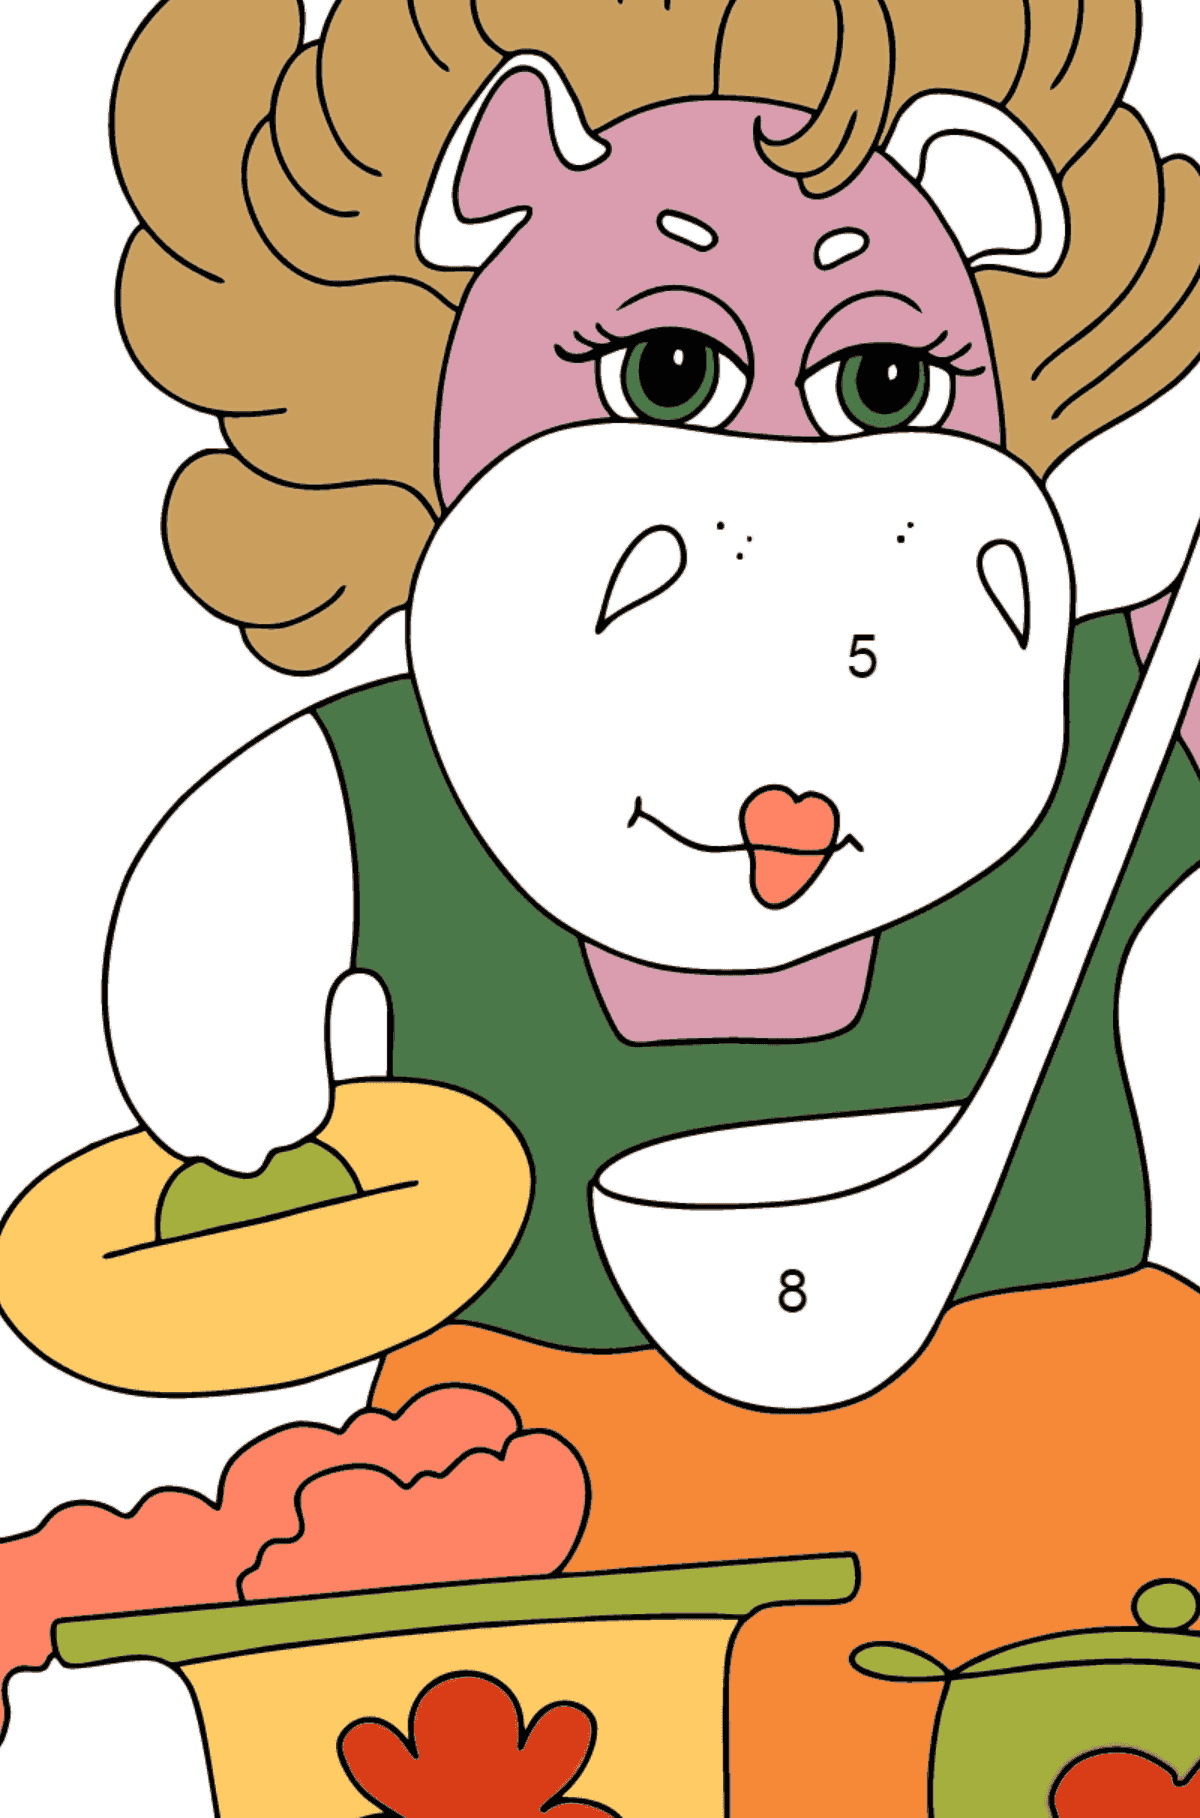 Coloring Page - A Hippo is Cooking Tasty Soup for Kids  - Color by Number